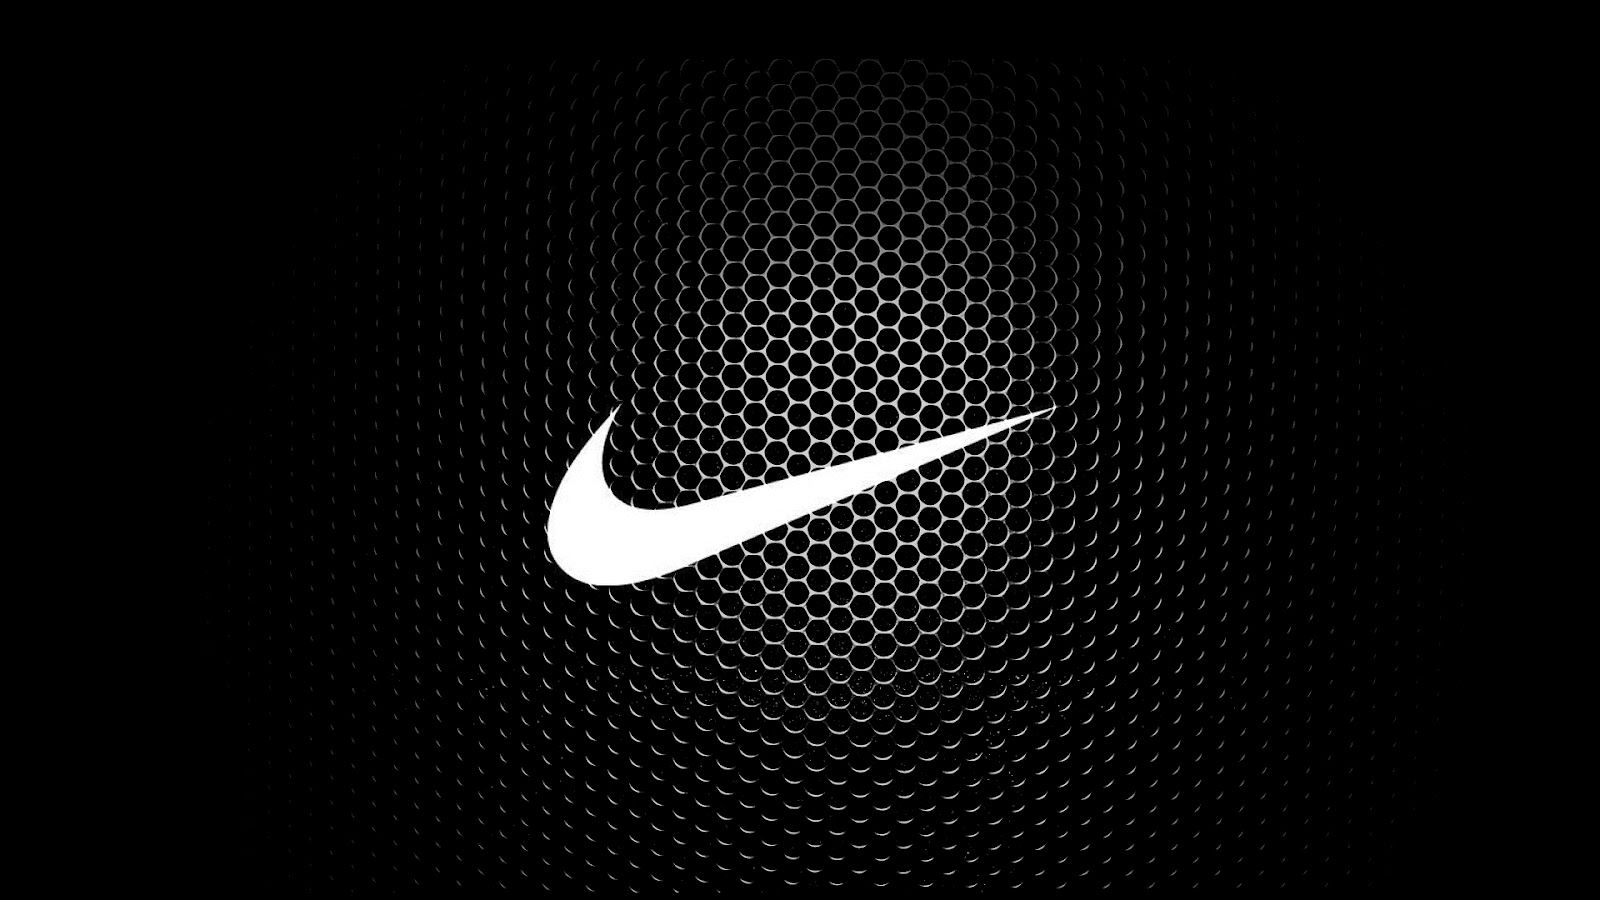 End of February 20% off Nike Sale